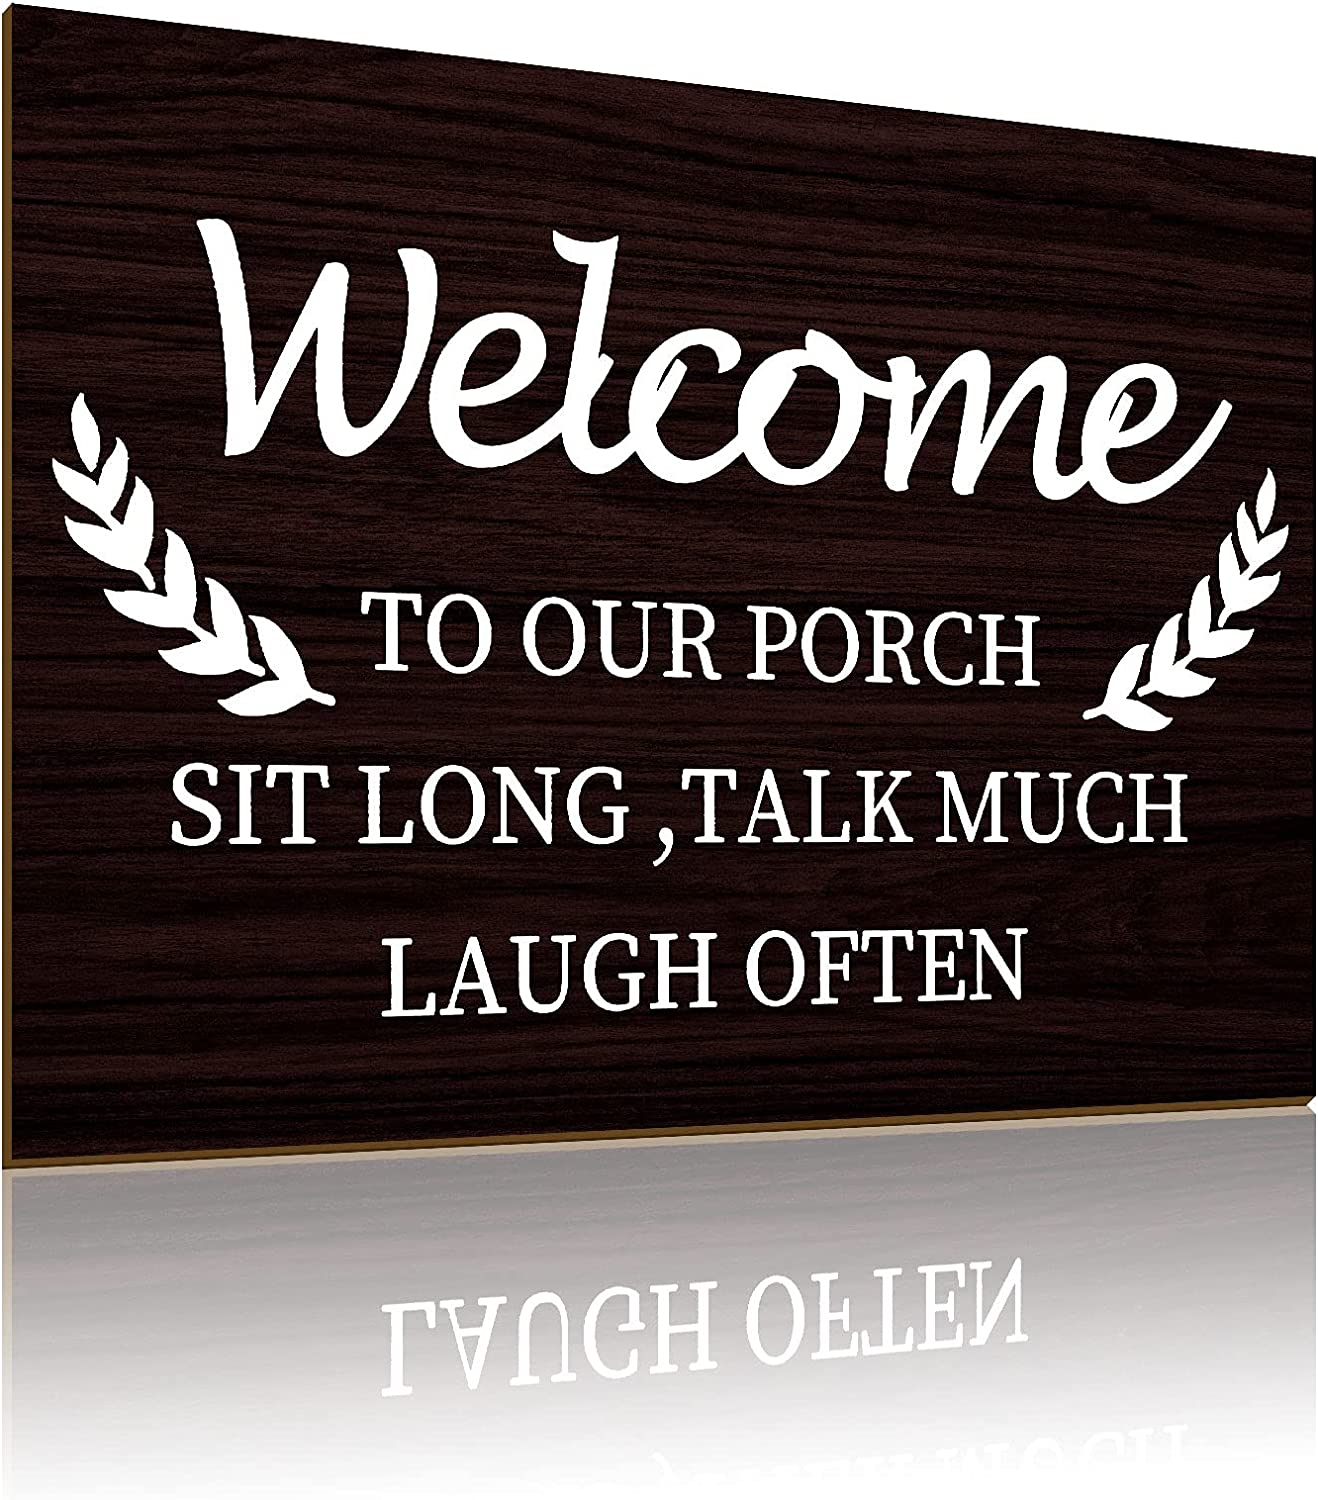 Welcome to Our Porch Sign Front Porch Wooden Decor Rustic Farmhouse Decor Home Sign Modern Retro Rustic Sign Front Porch Sign WallIndoor Outdoor Garden Decoration, 12 x 8 Inches